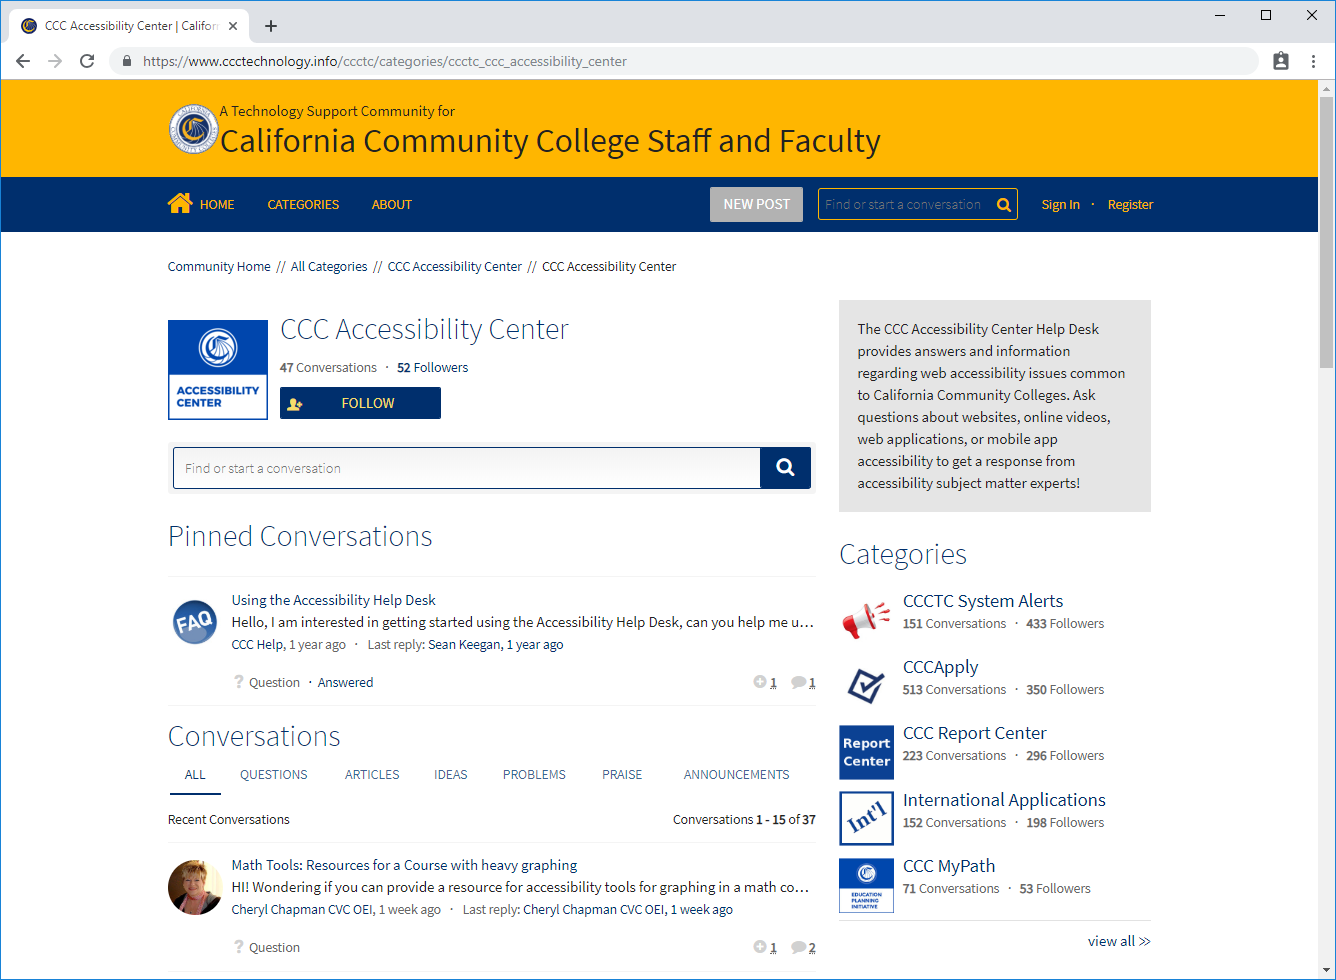 Screenshot of the Accessibility Center helpdesk